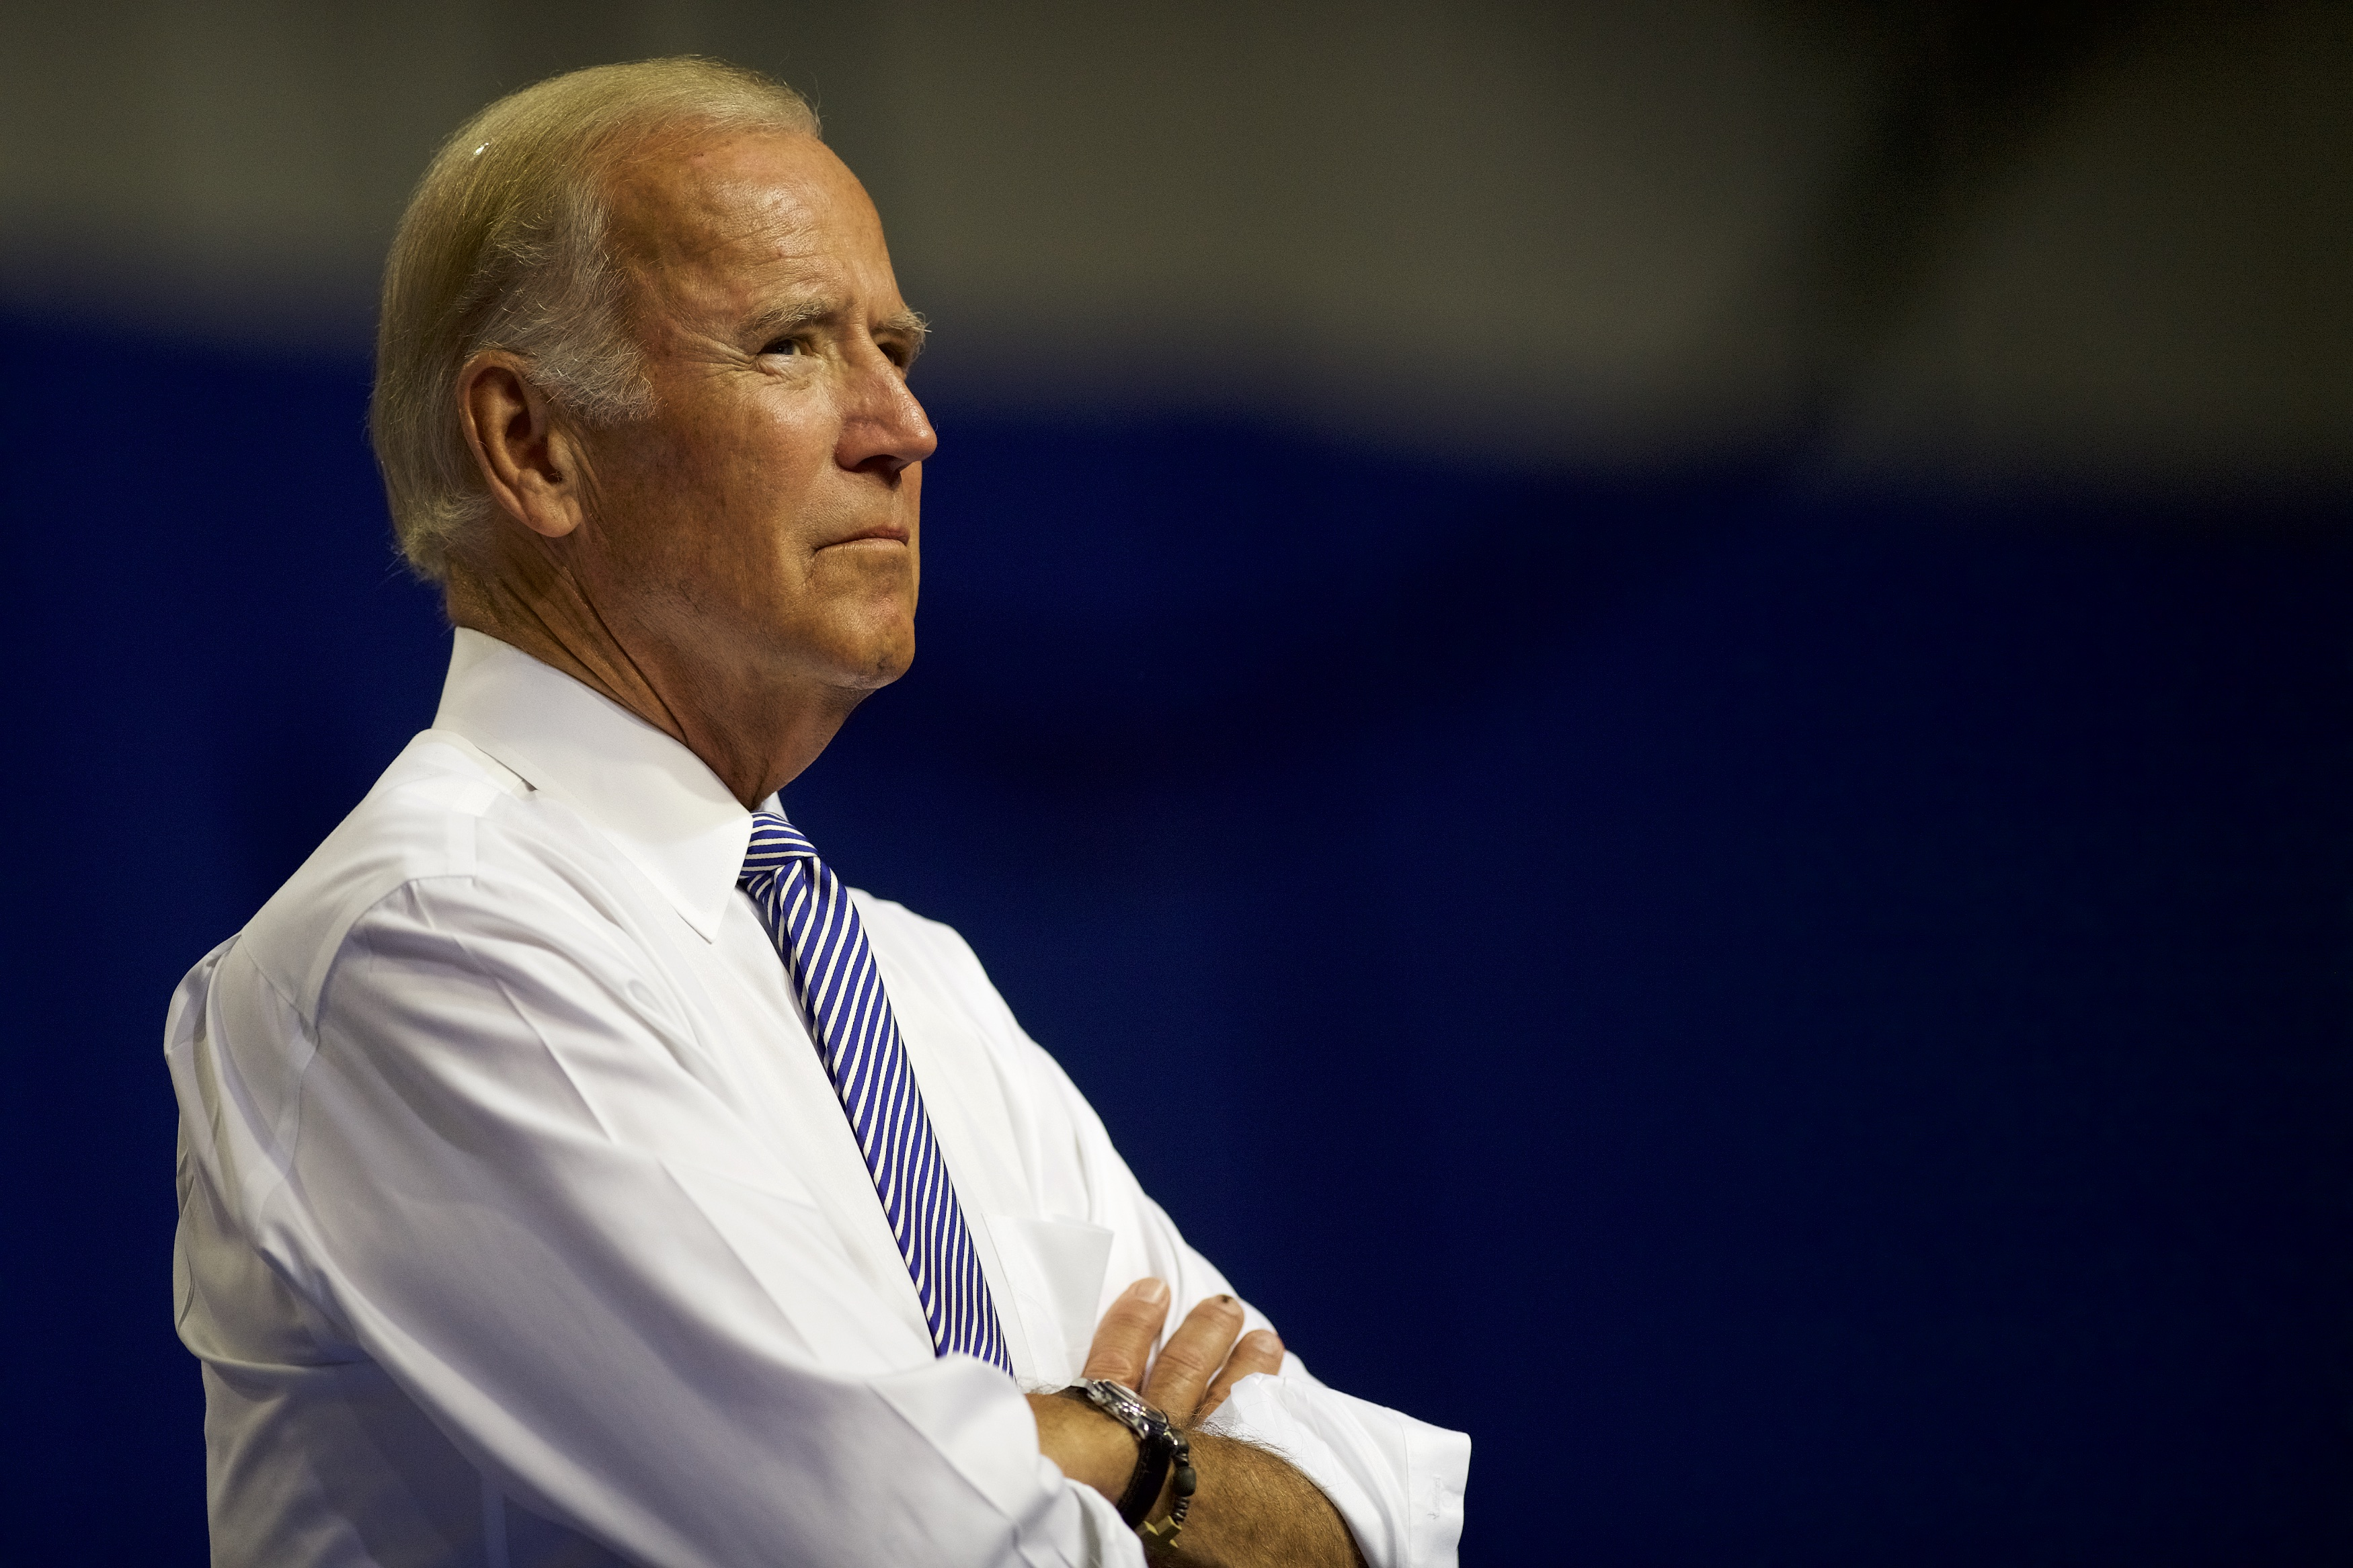 U.S. Vice President Joe Biden listens as Democratic Presidential candidate Hillary Clinton delivers remarks at Riverfront Sports athletic facility on August 15, 2016 in Scranton, Pennsylvania.